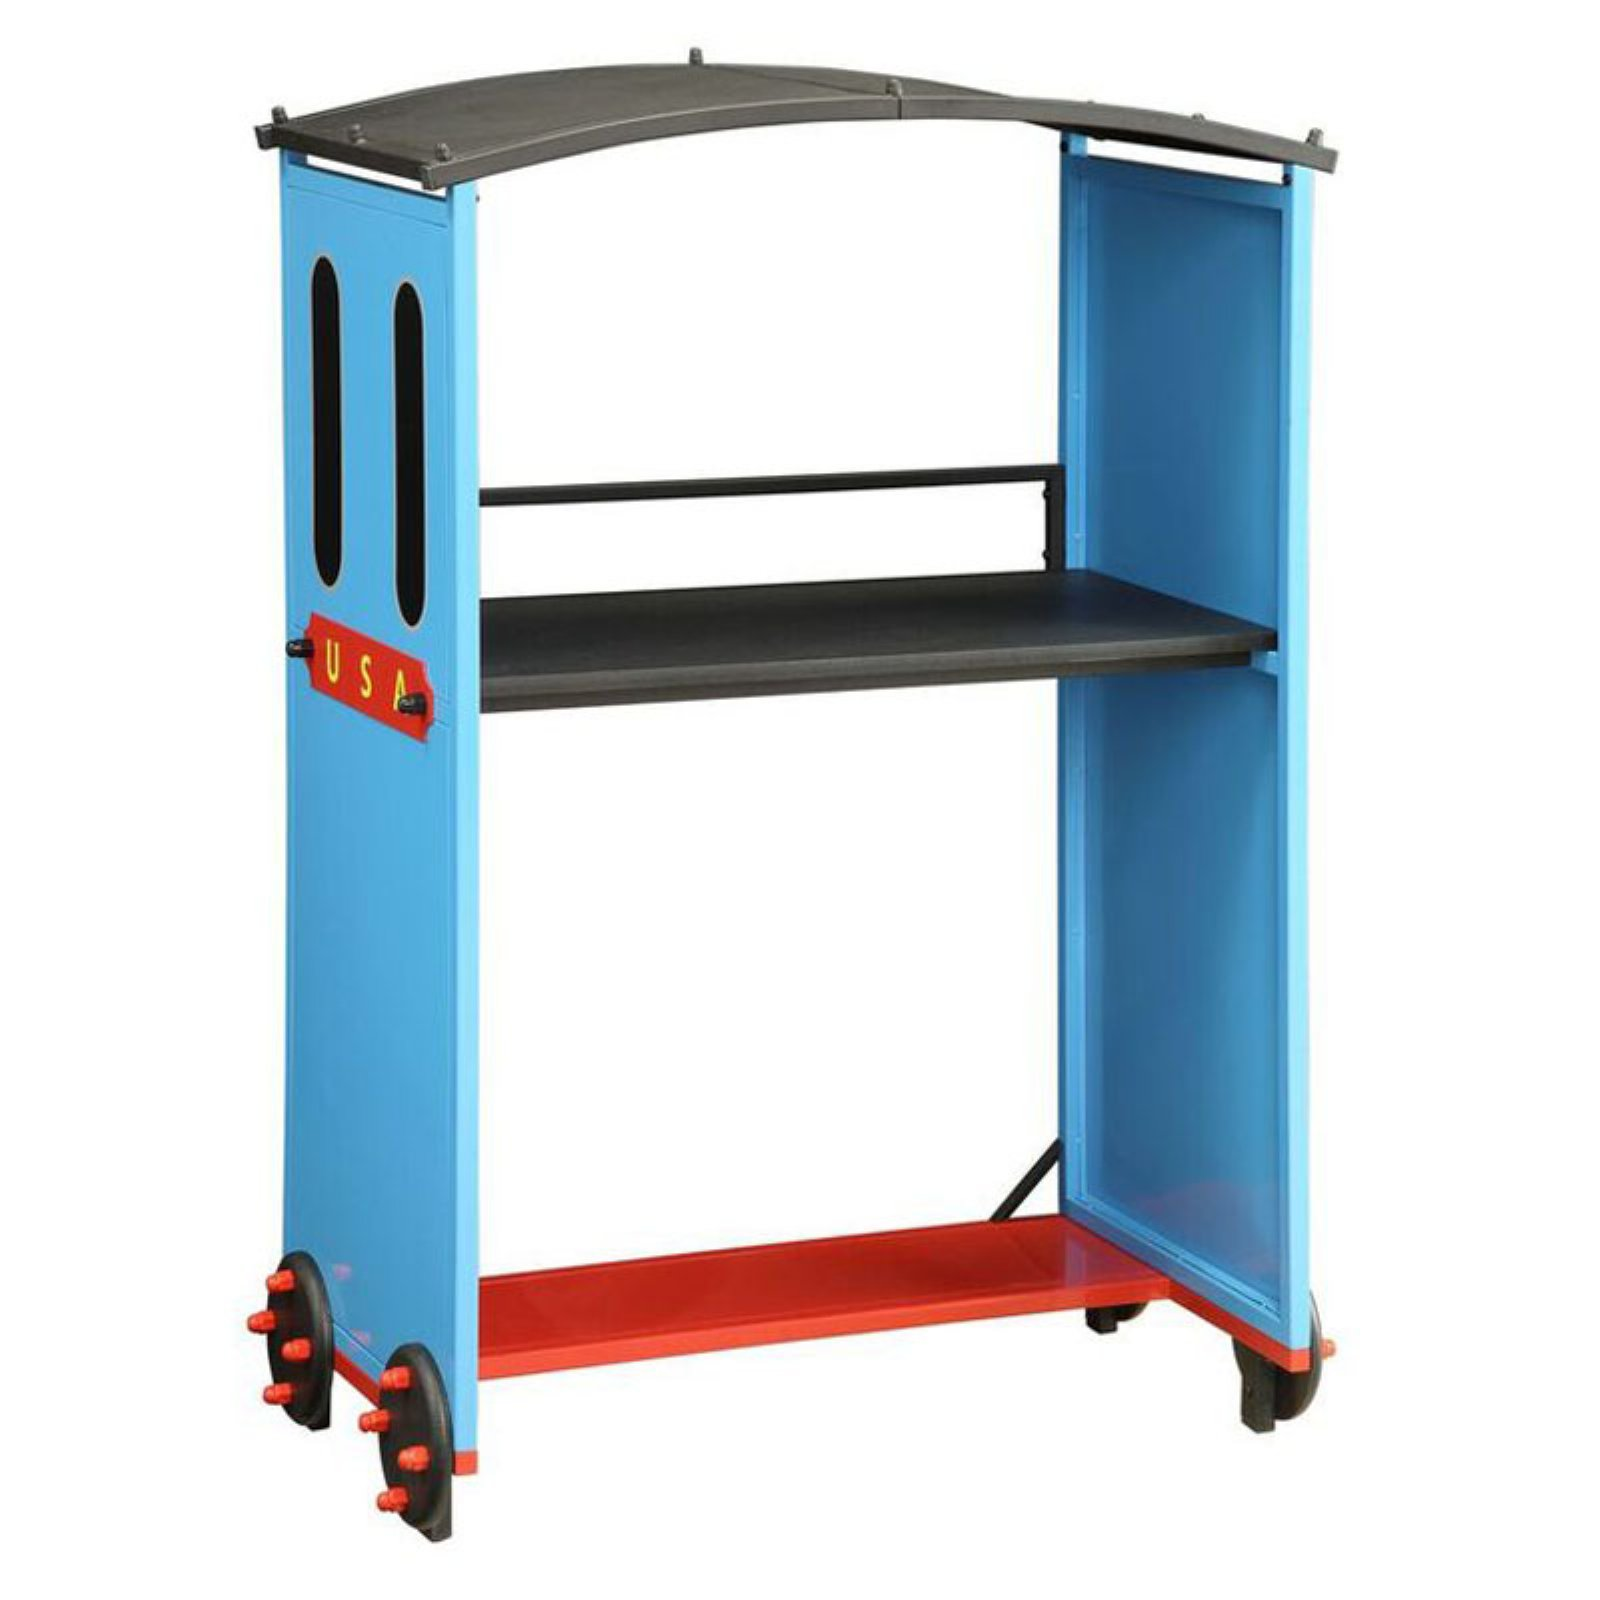 Acme Tobi Desk, Blue/Red and Black (Box 2 of 2)